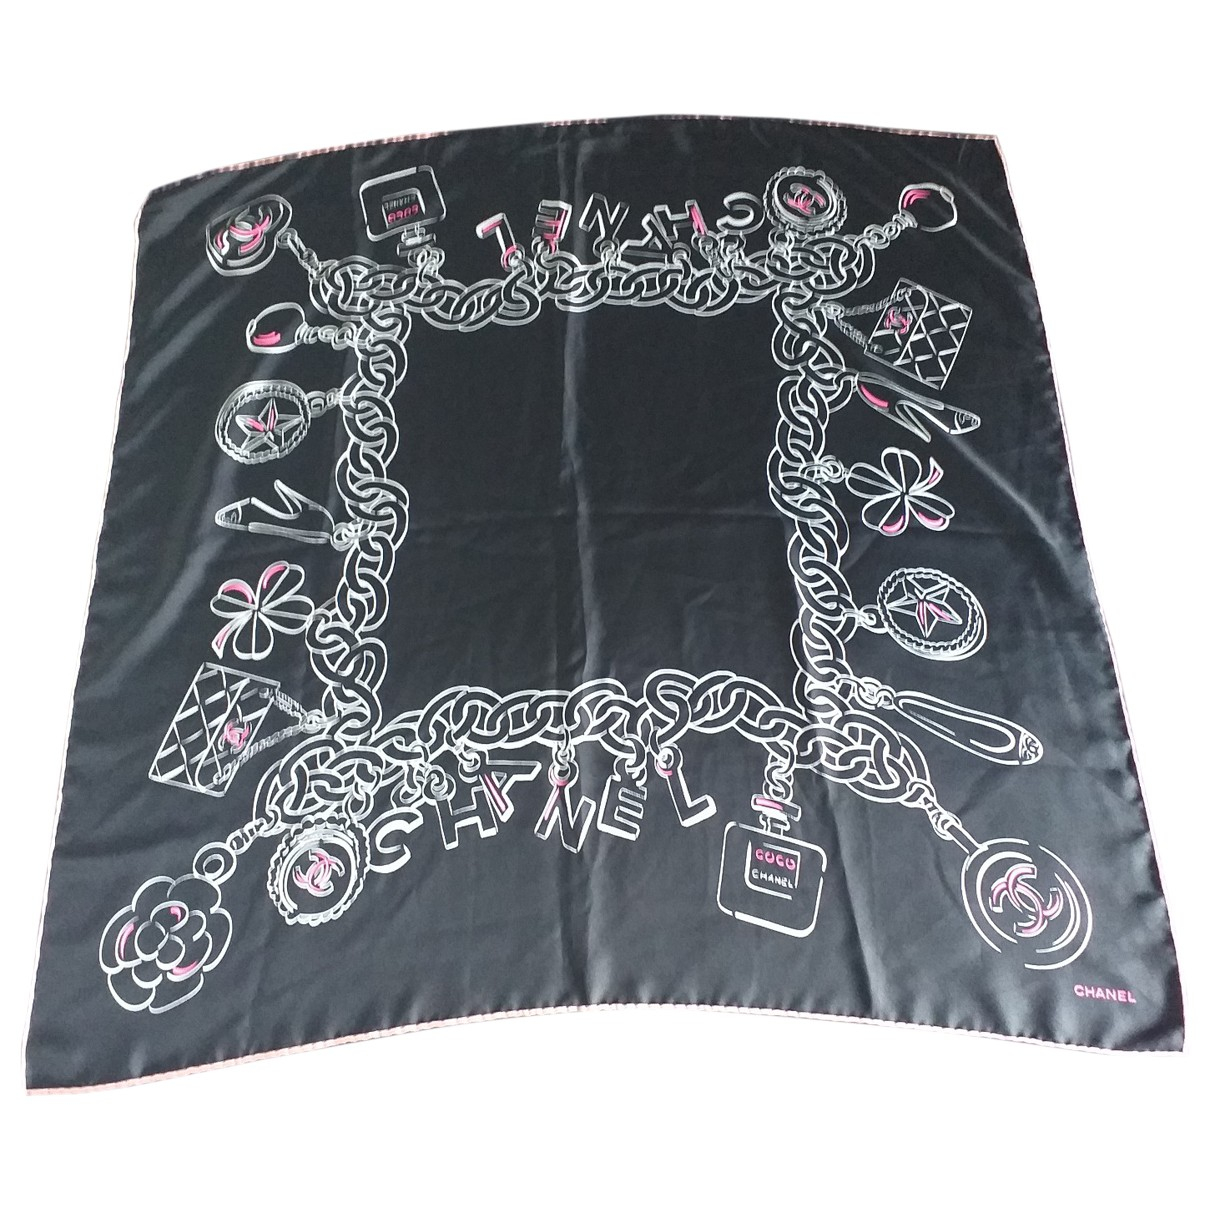 Chanel \N Black Silk Silk handkerchief for Women \N